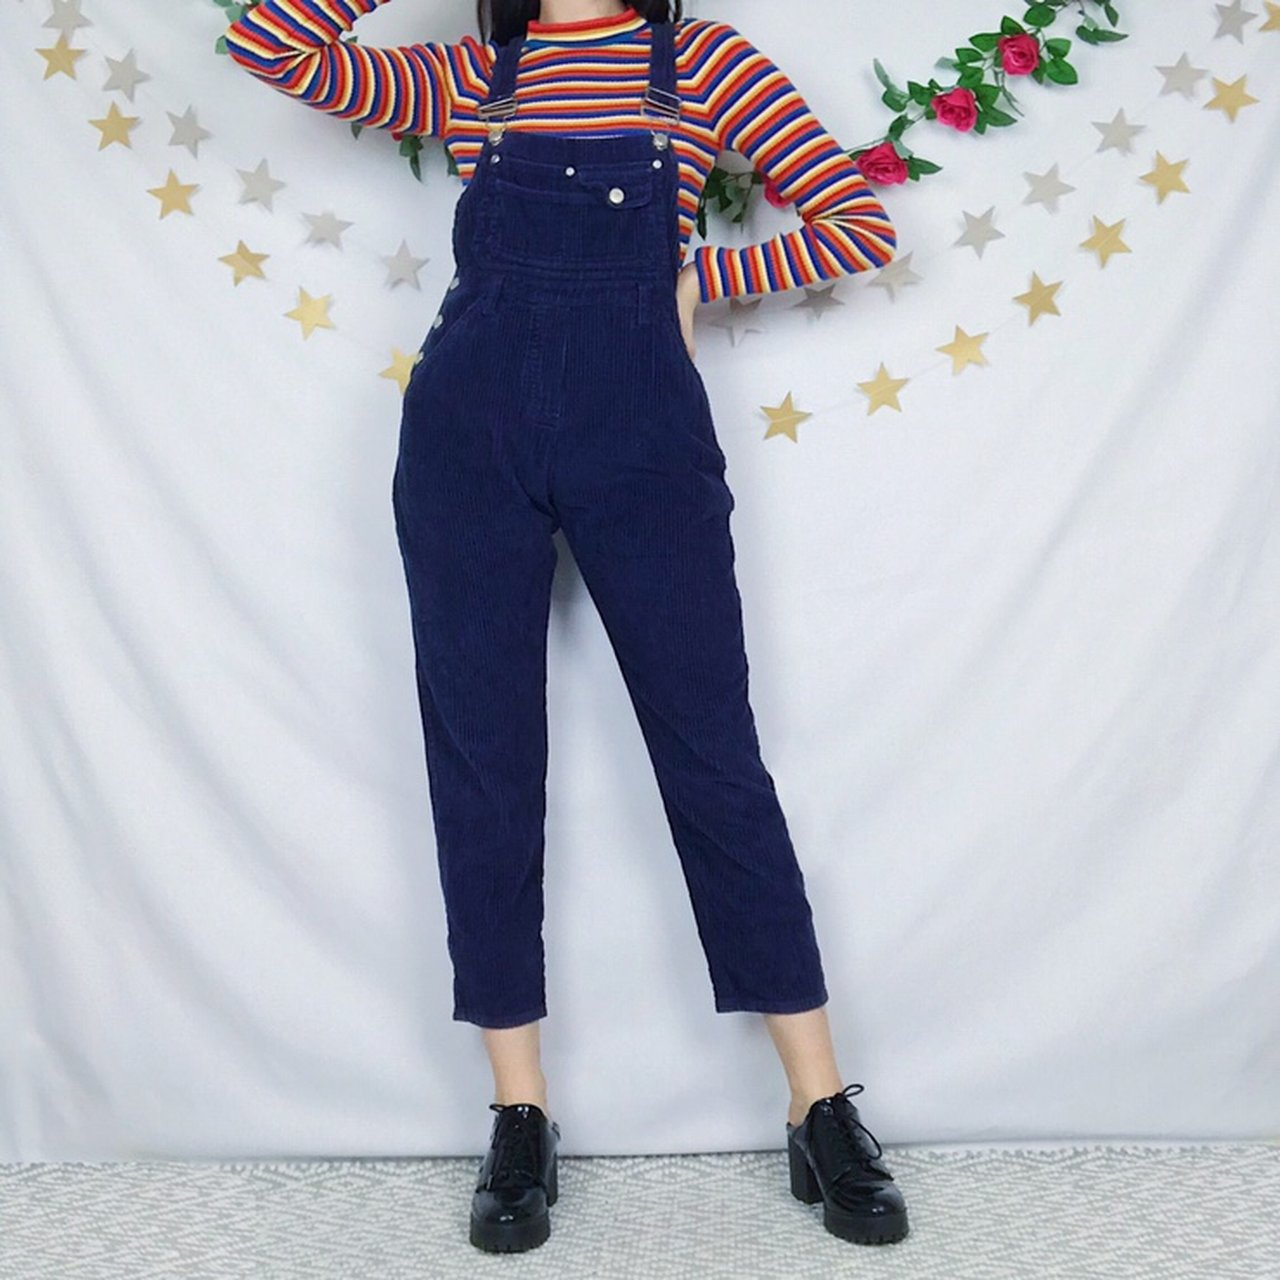 000dd762cdf 🦋 NEW IN 🦋 Adorable vintage navy blue jumbo corduroy with - Depop